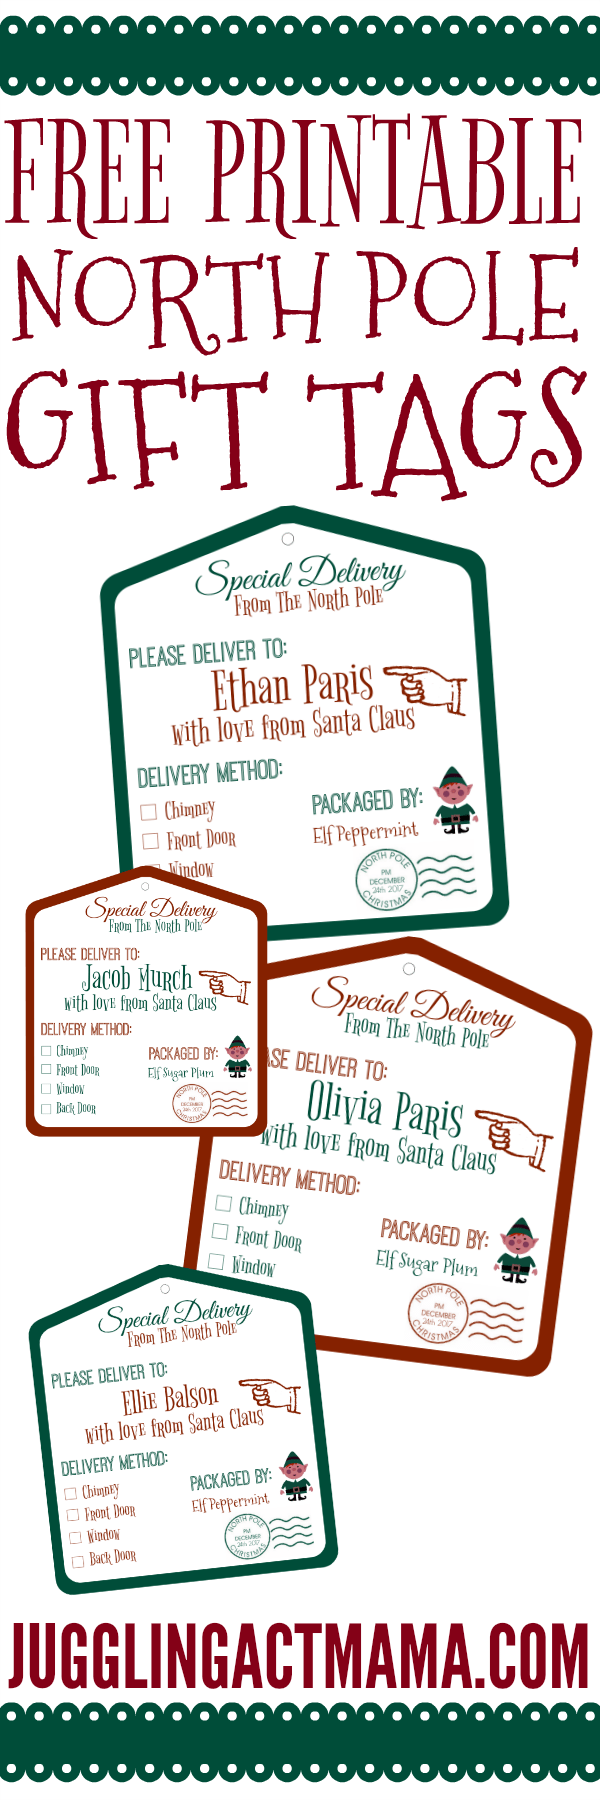 image about Free Printable North Pole Special Delivery Printable known as North Pole Printable Reward Tags - Juggling Act Mama